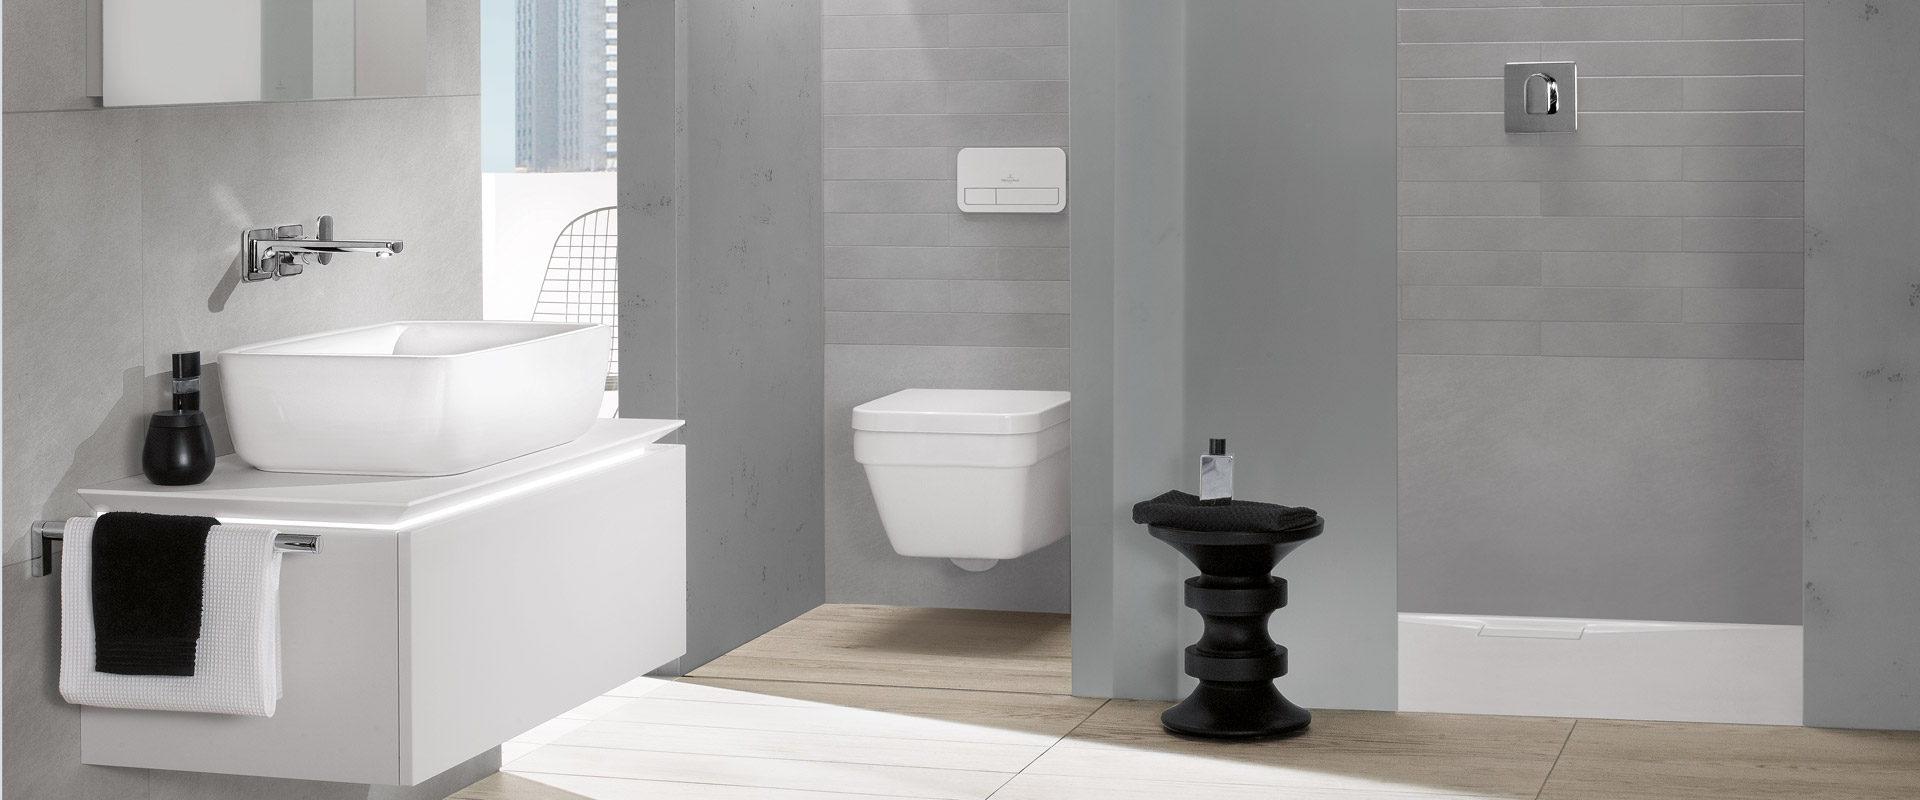 Architectura Collection By Villeroy & Boch - Timeless Design For ... Designer Toilette Badezimmer High Tech